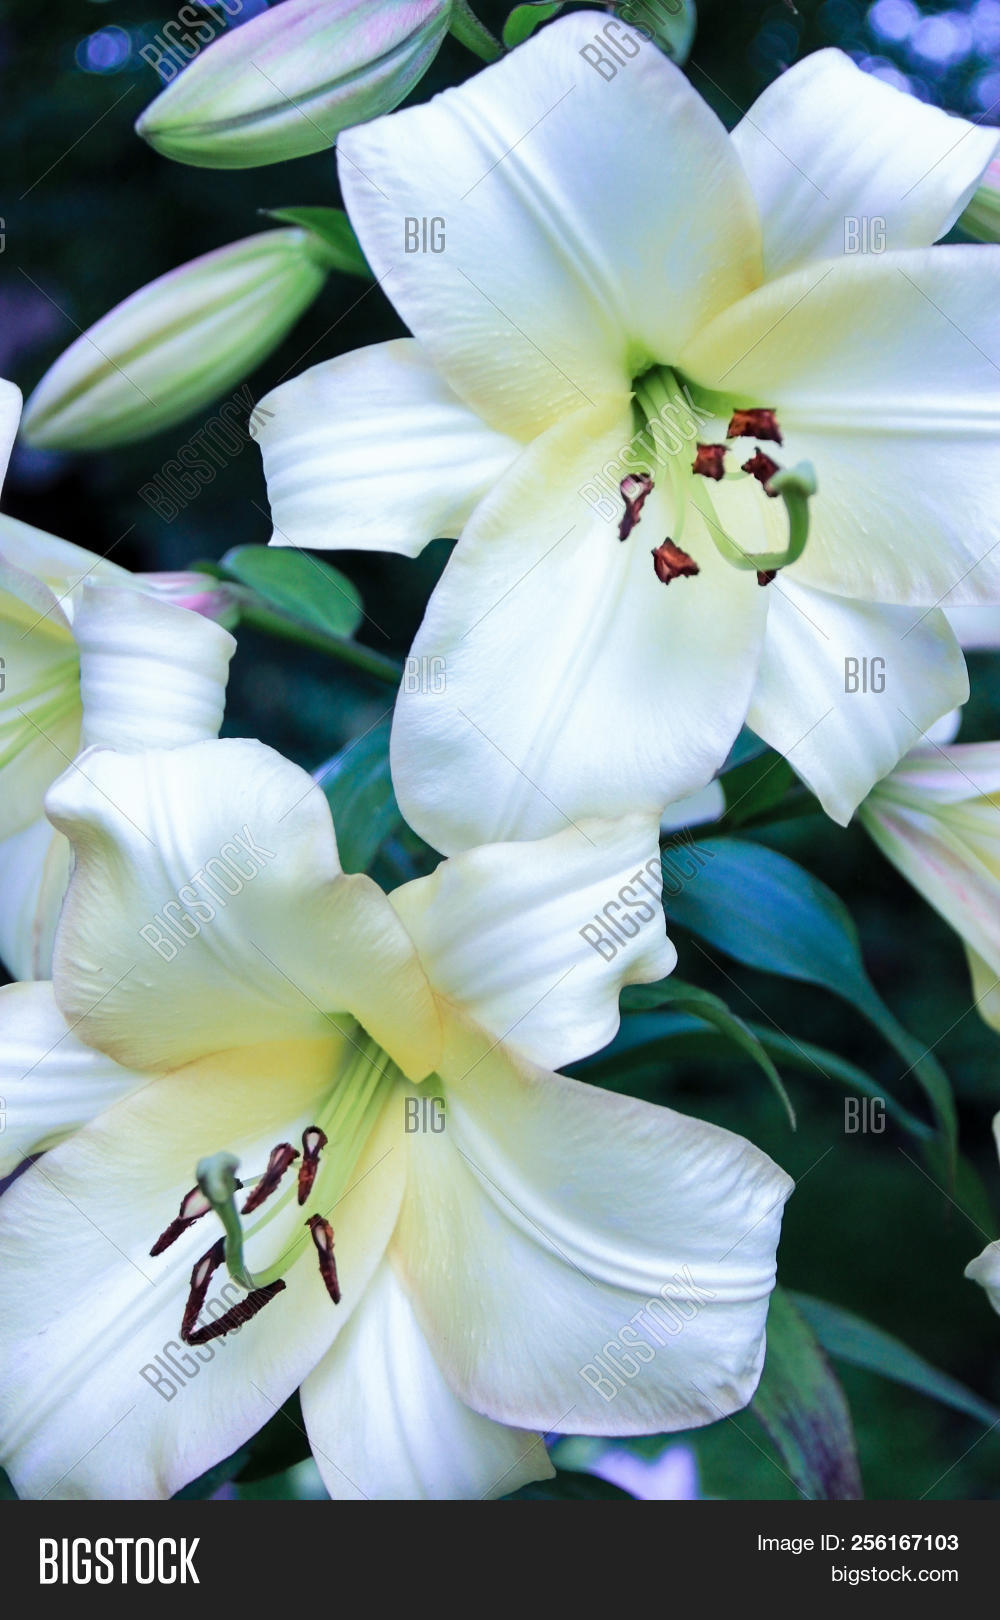 A Beautiful Inflorescence Of Large White Lilies On A Green